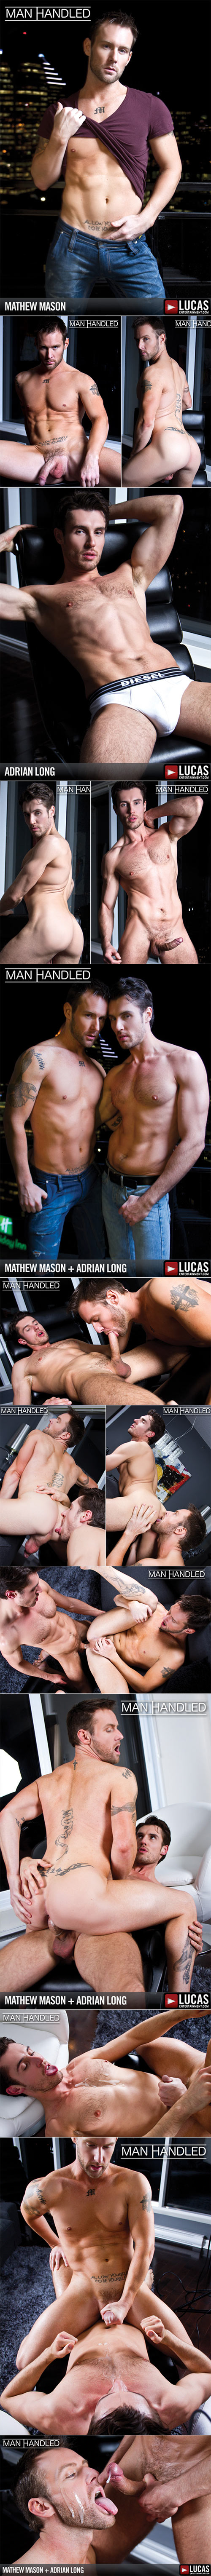 "LucasEntertainment: Adrian Long fucks Mathew Mason in ""Man Handled"""